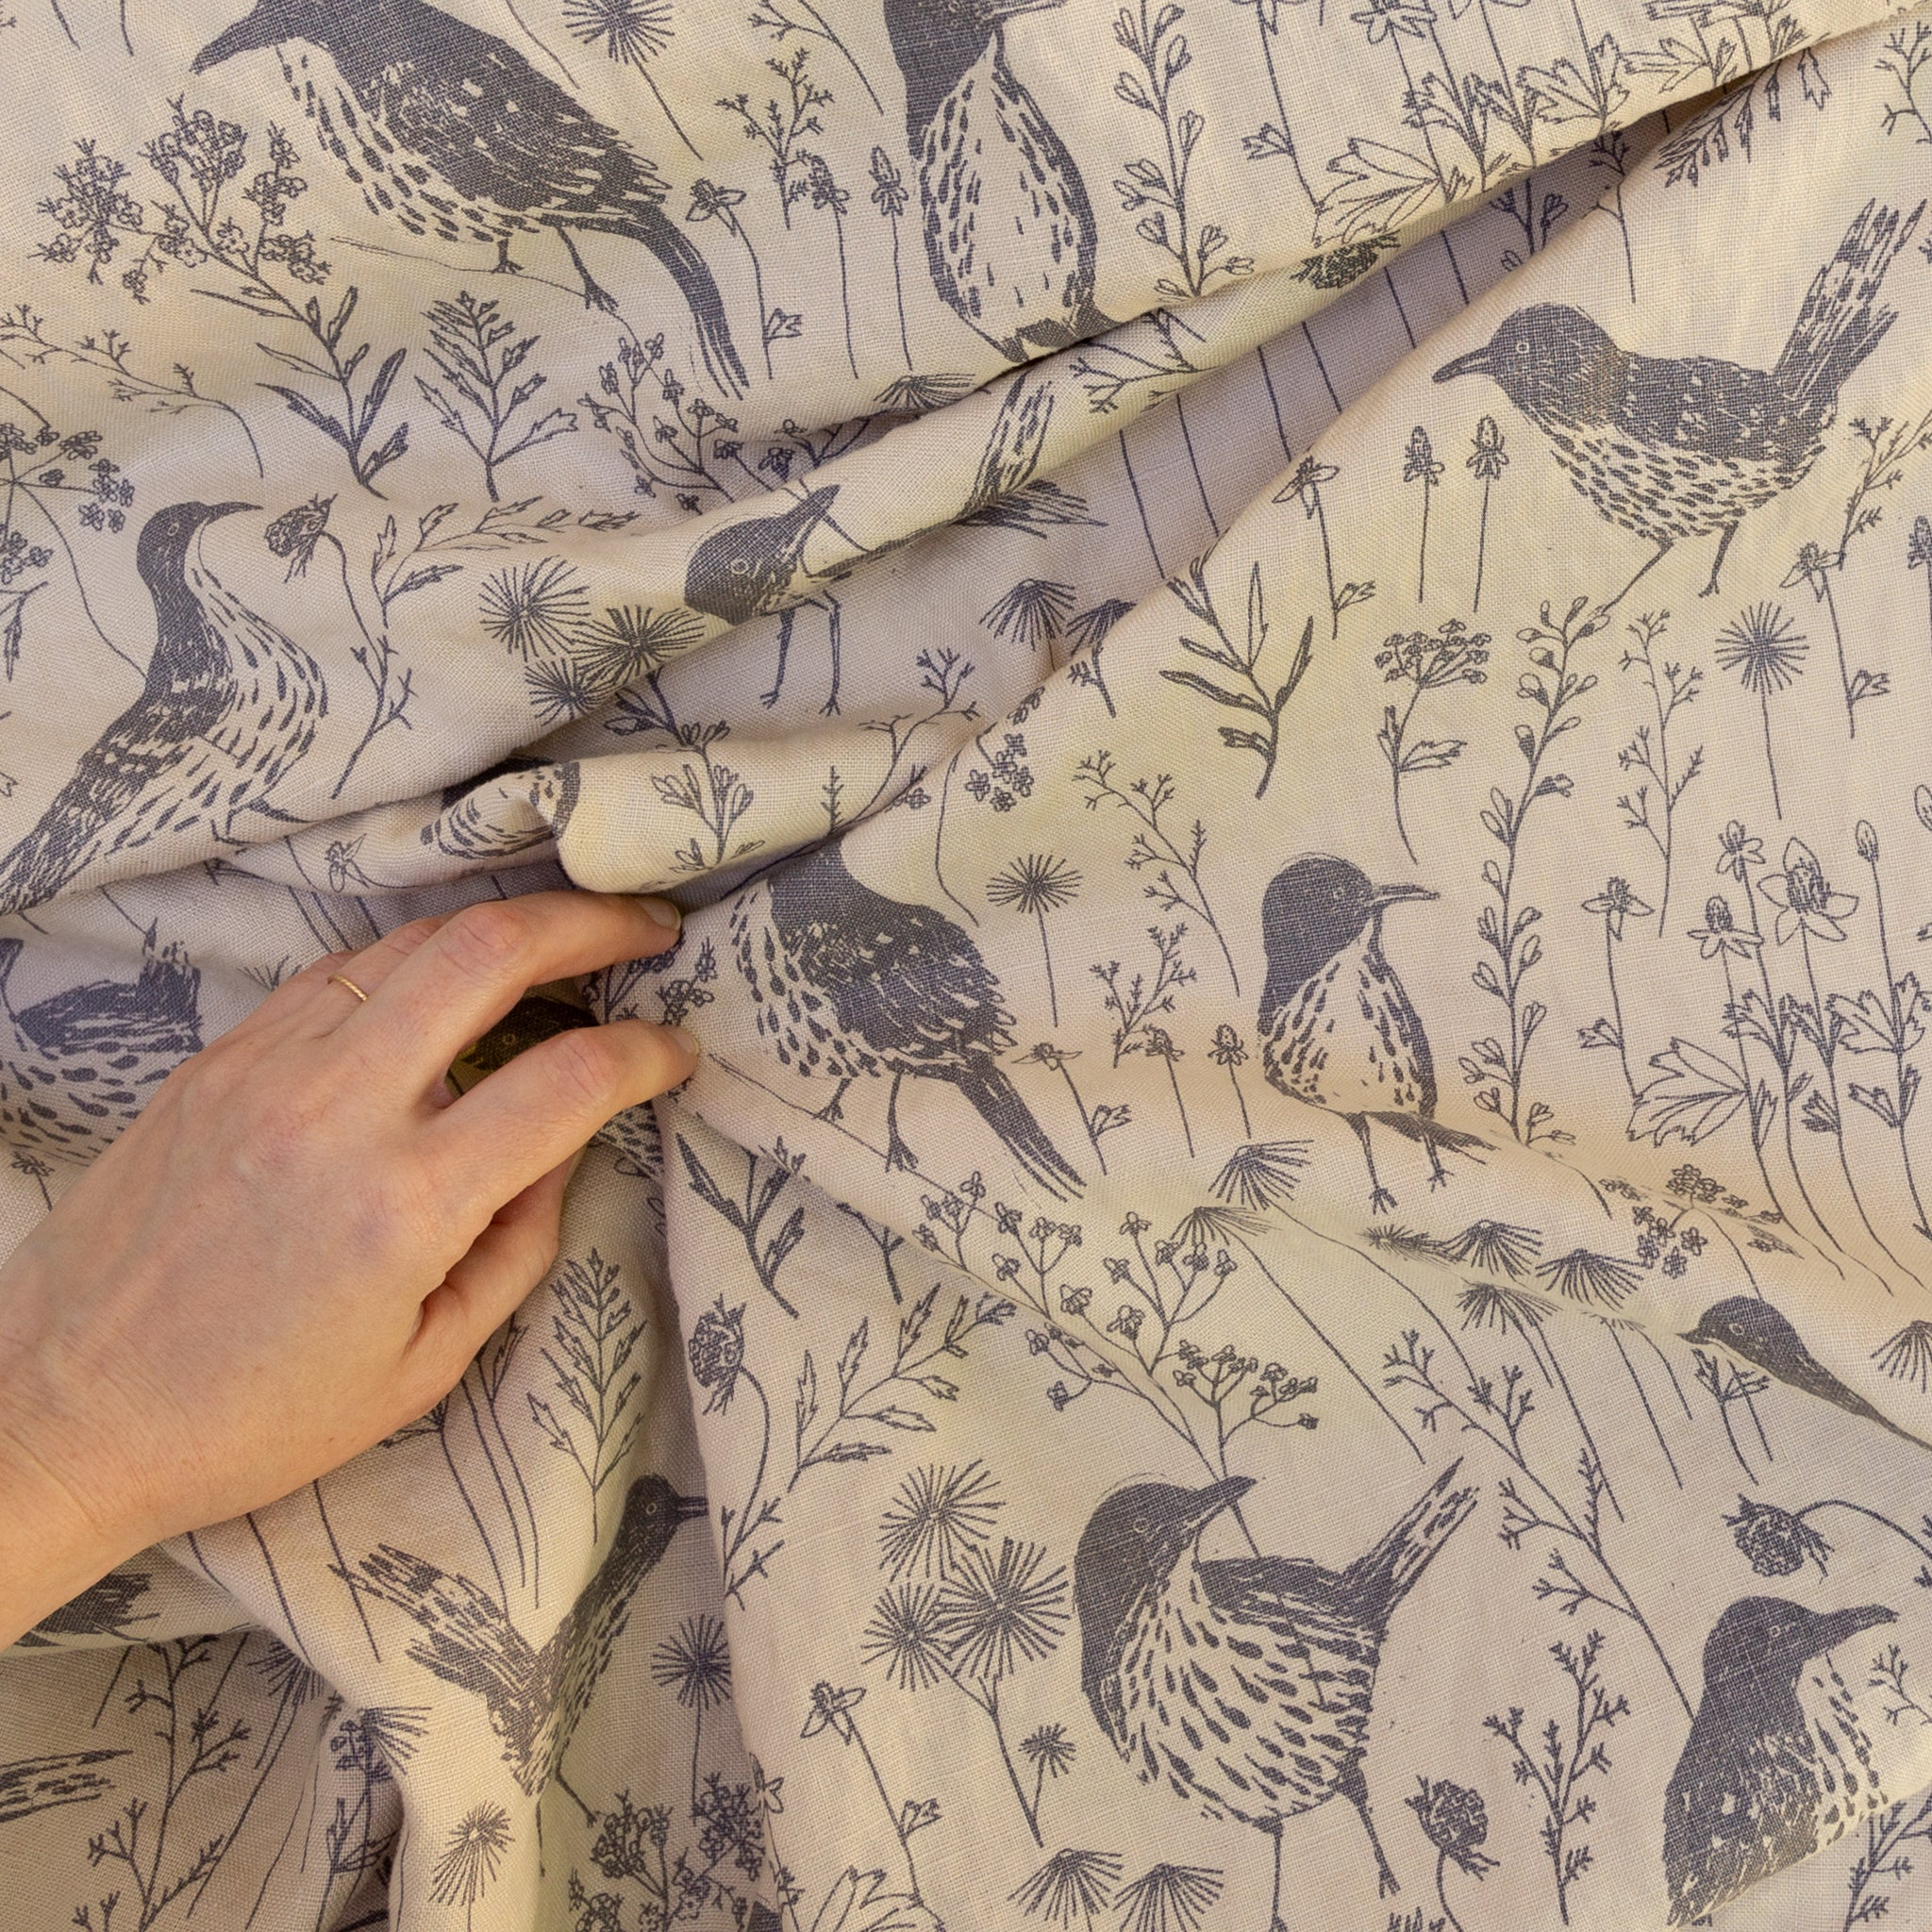 Screen printed fabric yardage with brown thrashers and hand for scale